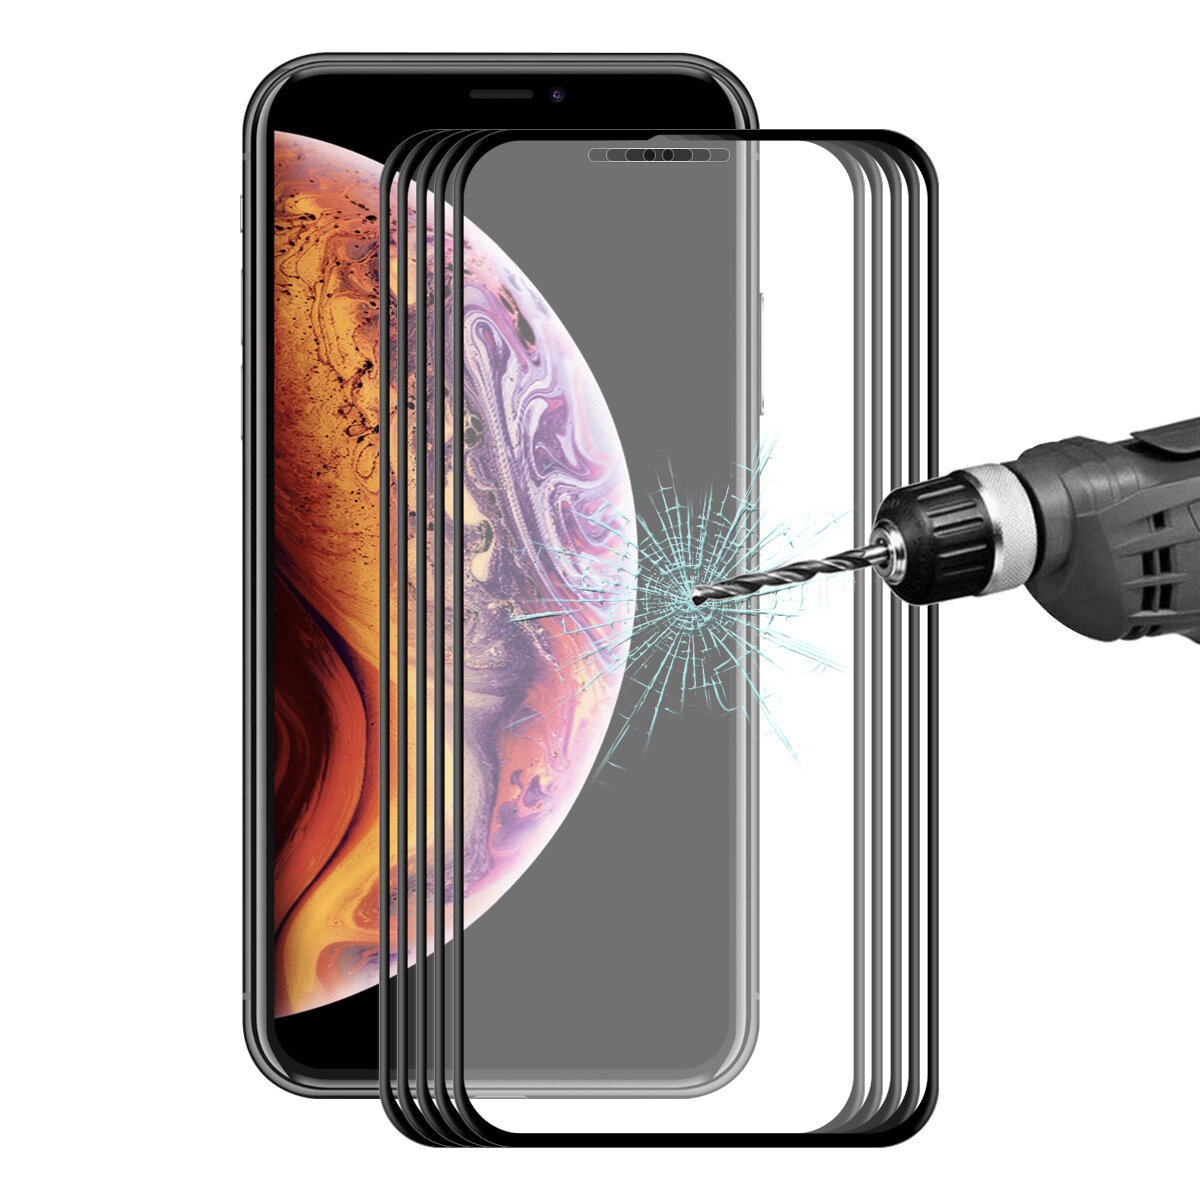 5 Packs Bakeey Screen Protector For iPhone XS Max 3D Soft Edge Carbon Fiber Tempered Glass Film